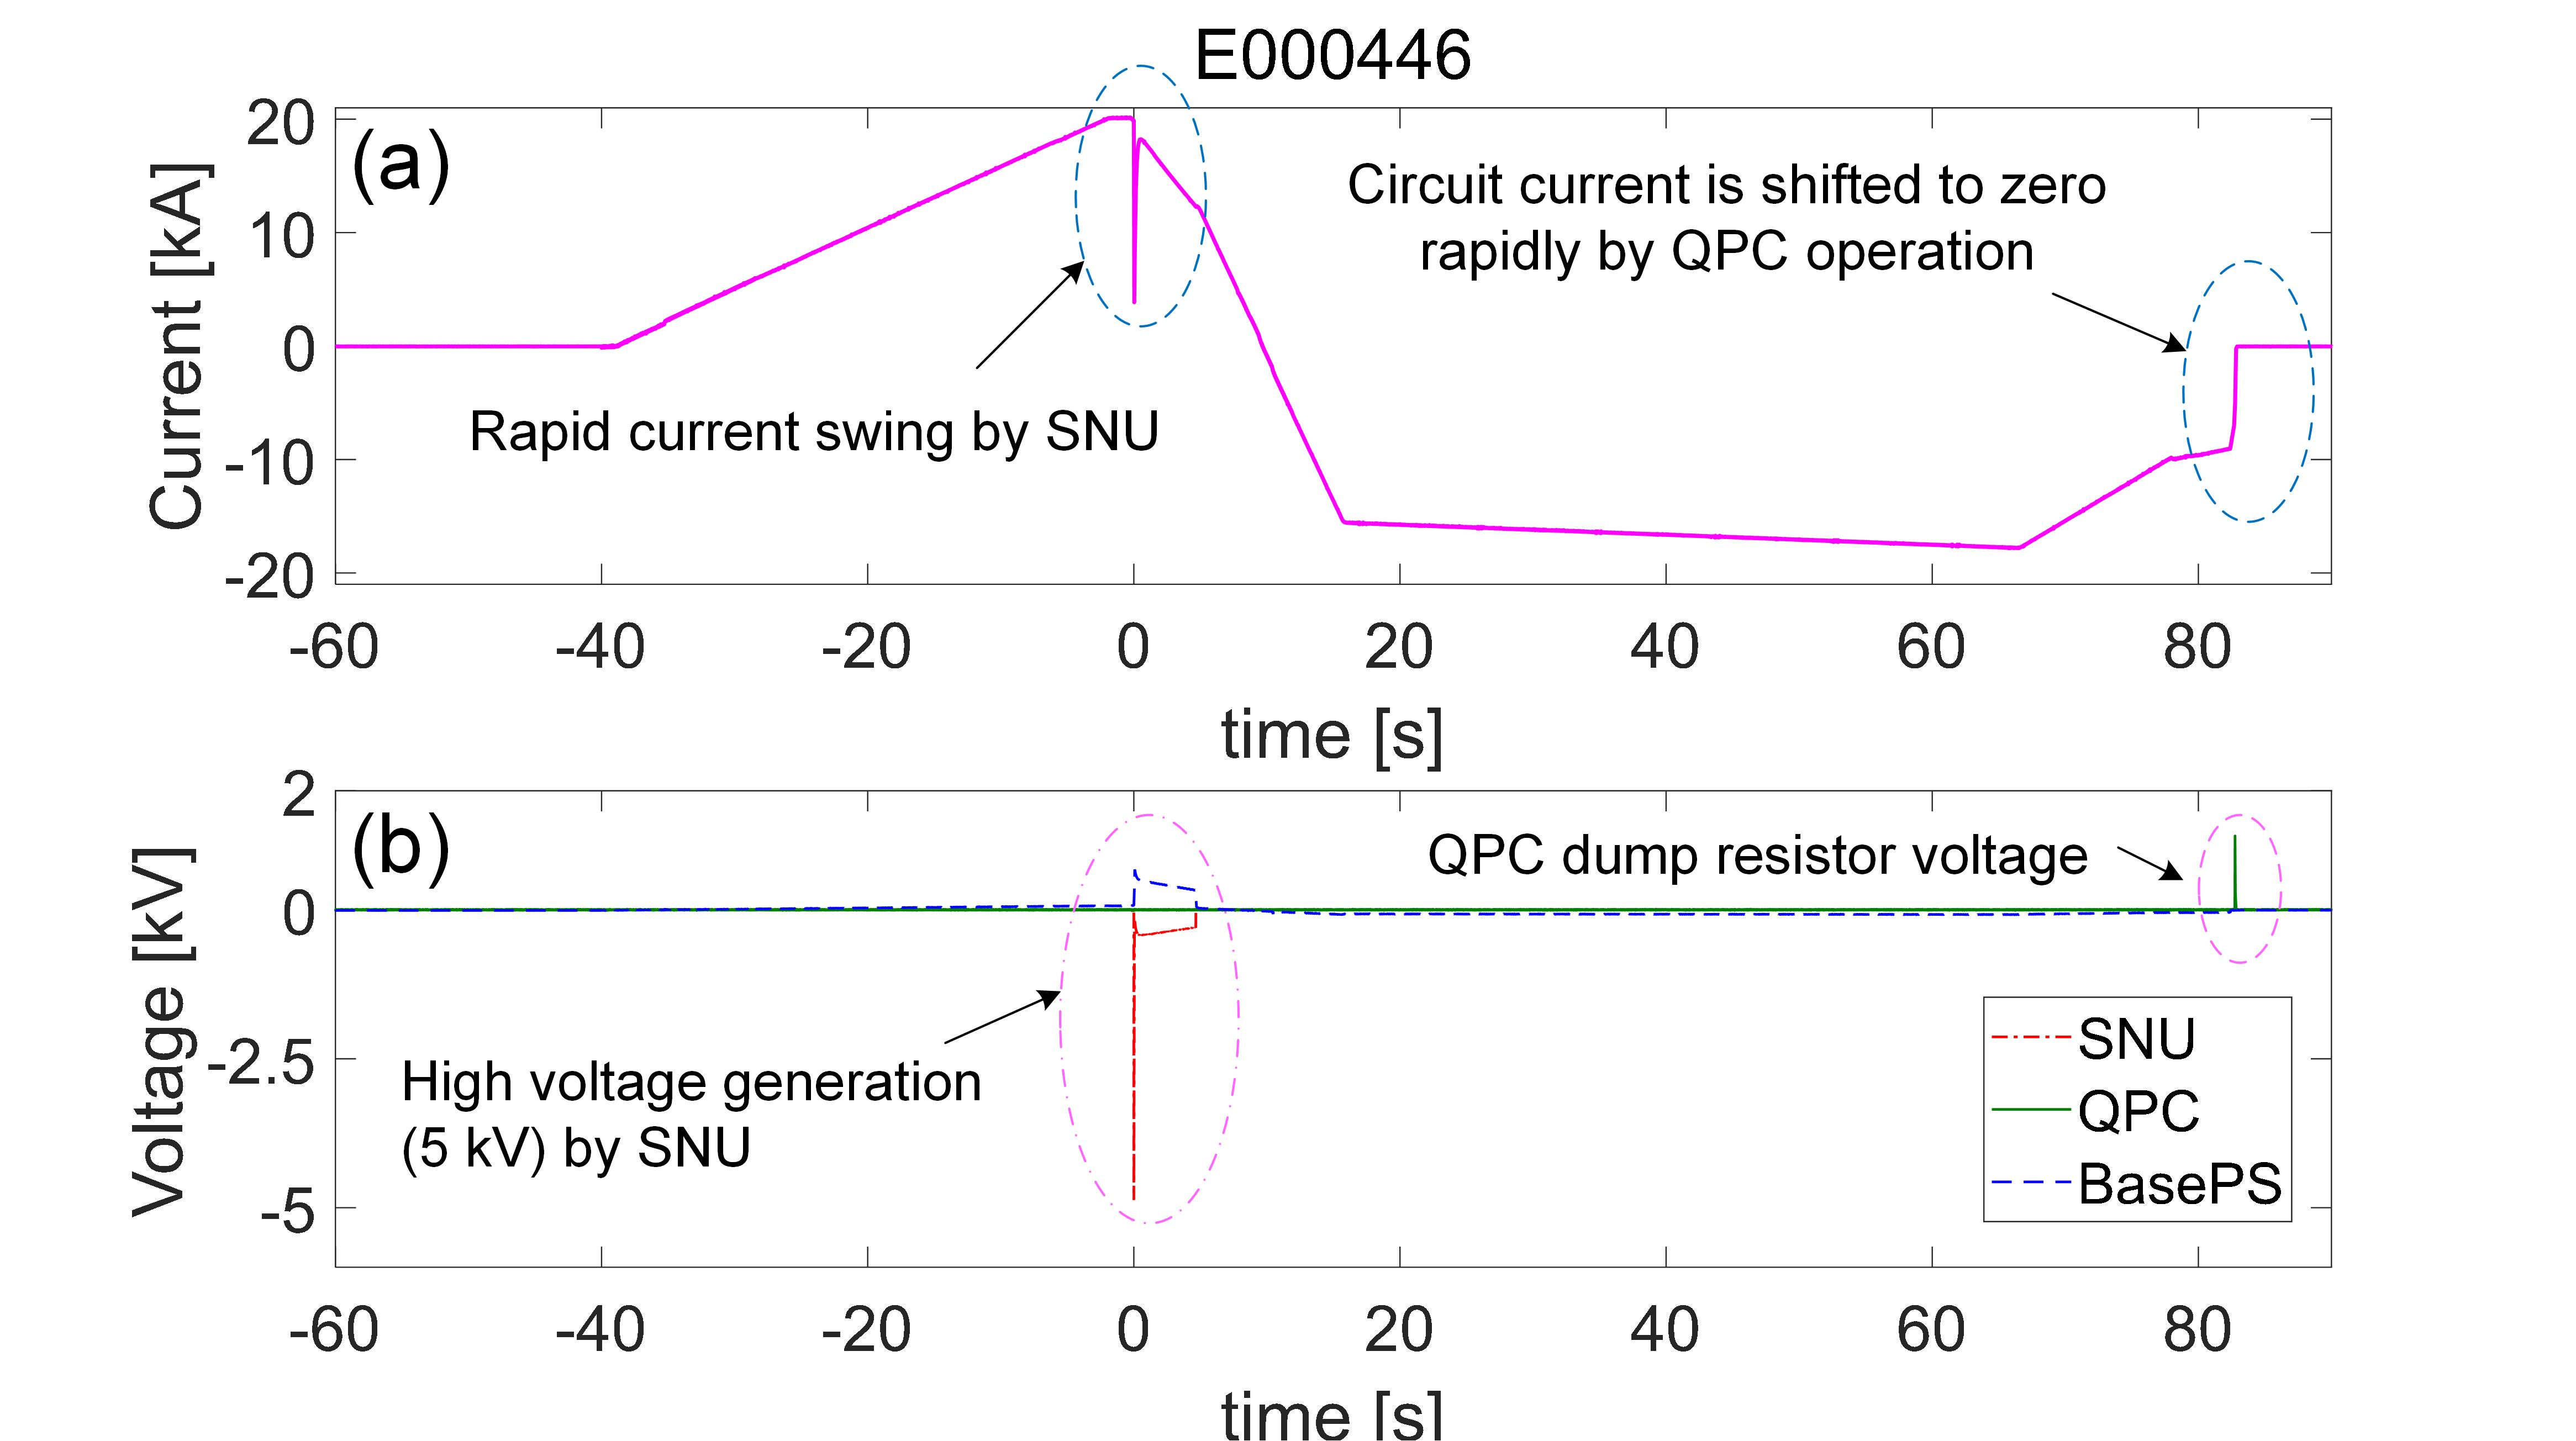 Coil current and voltage shape according to the assumed plasma operation scenario including SNU operation at t= 0s and QPC operation at t= 83s (a) Circuit current shape which observed rapid current swing by SNU and current shut-down by QPC (b) Voltage shapes which obtained high voltage generation of 5 kV by SNU and dump resistor voltage generated by QPC operation.